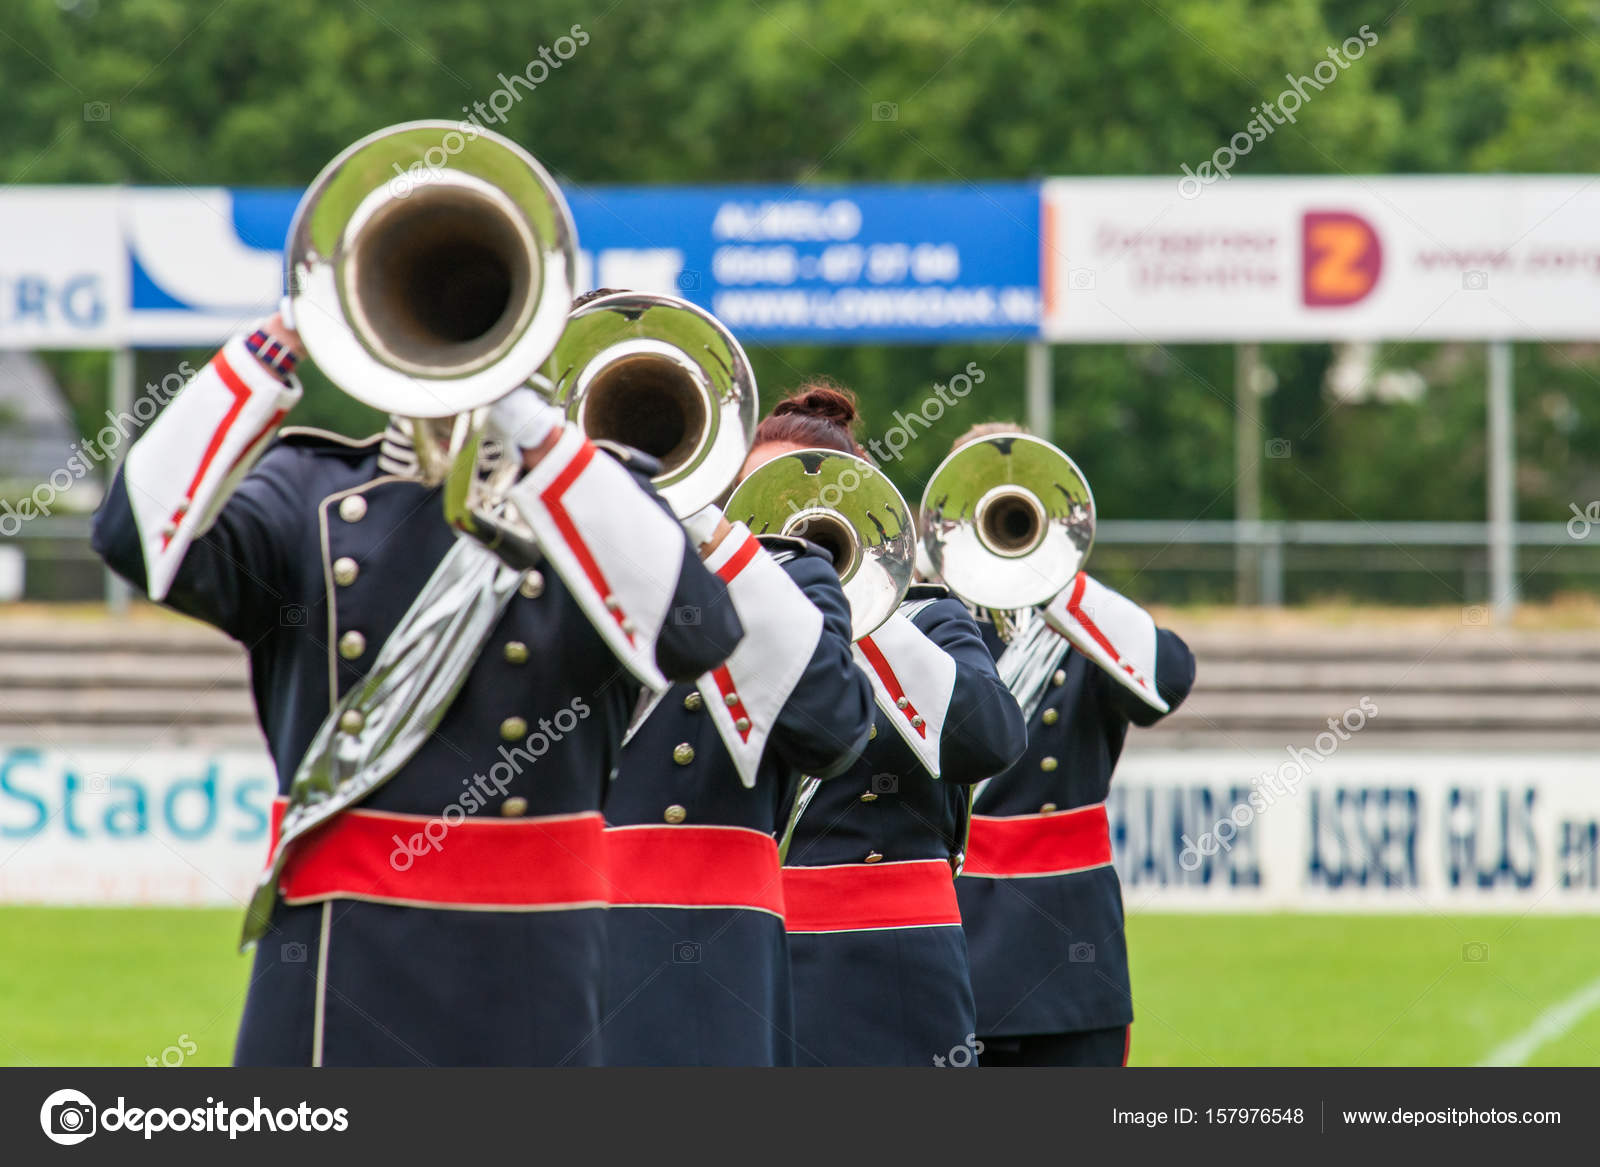 Brass band playing live music during performance – Stock Editorial